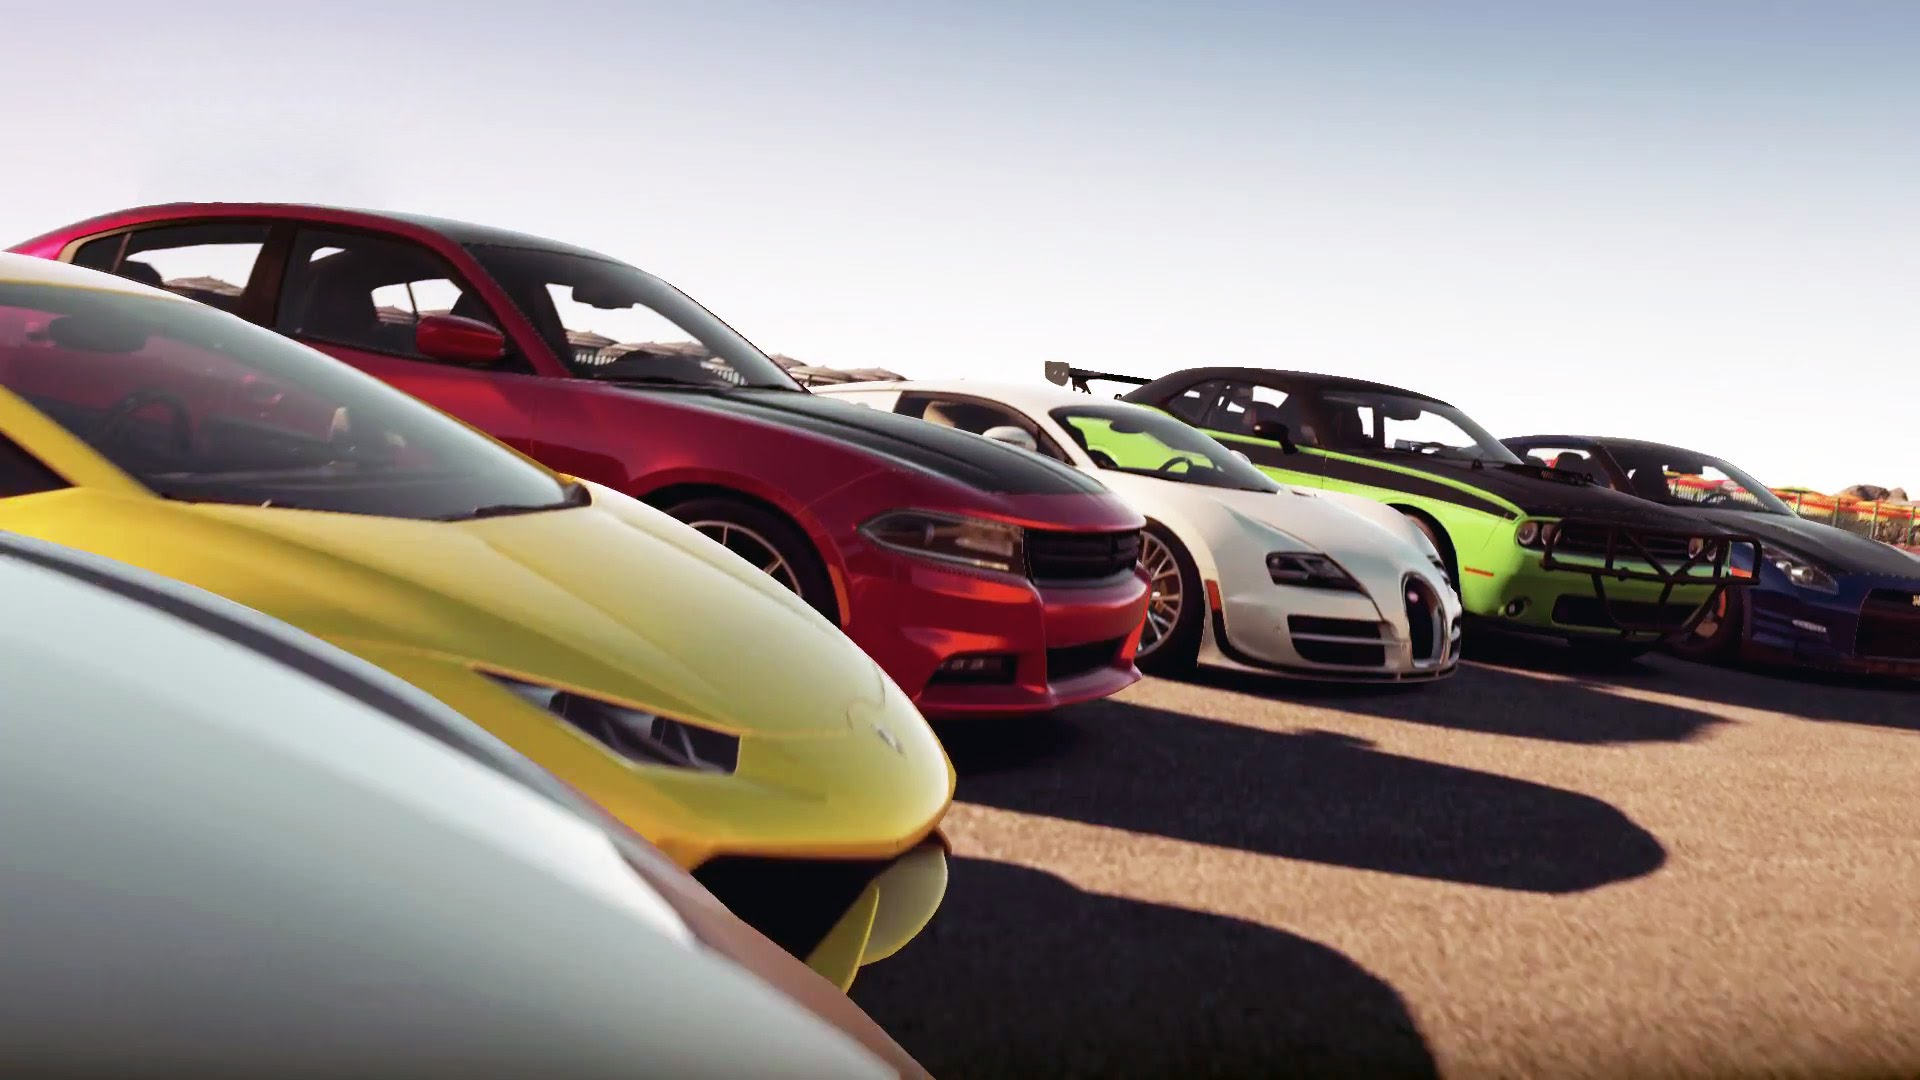 21 2015 By Stephen Comments Off on Forza Horizon 2 Wallpaper 1080p 1920x1080